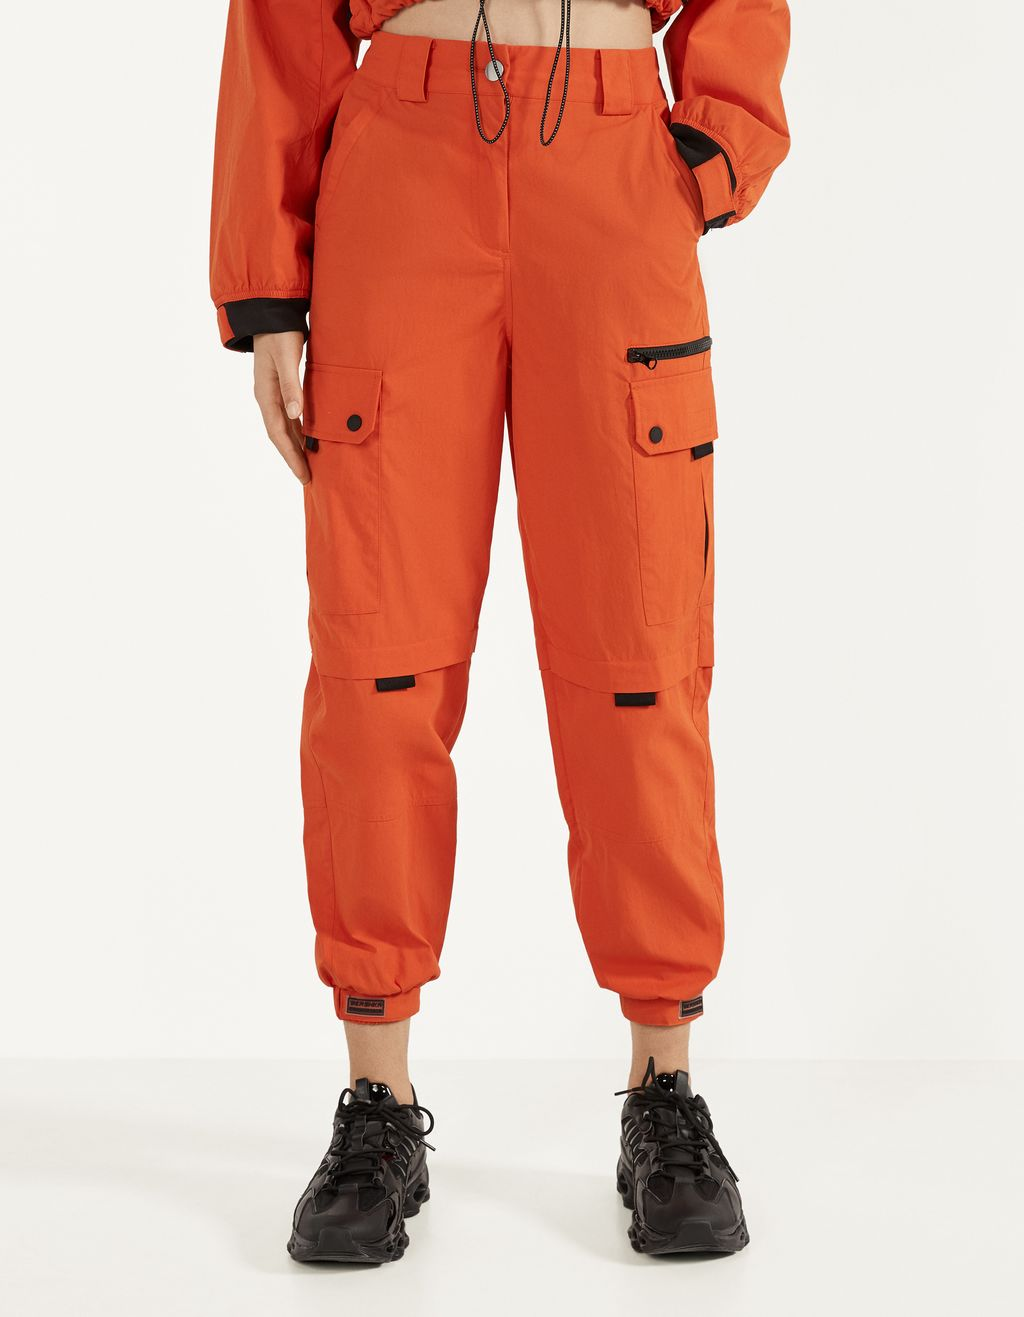 Nylon cargo jogging trousers